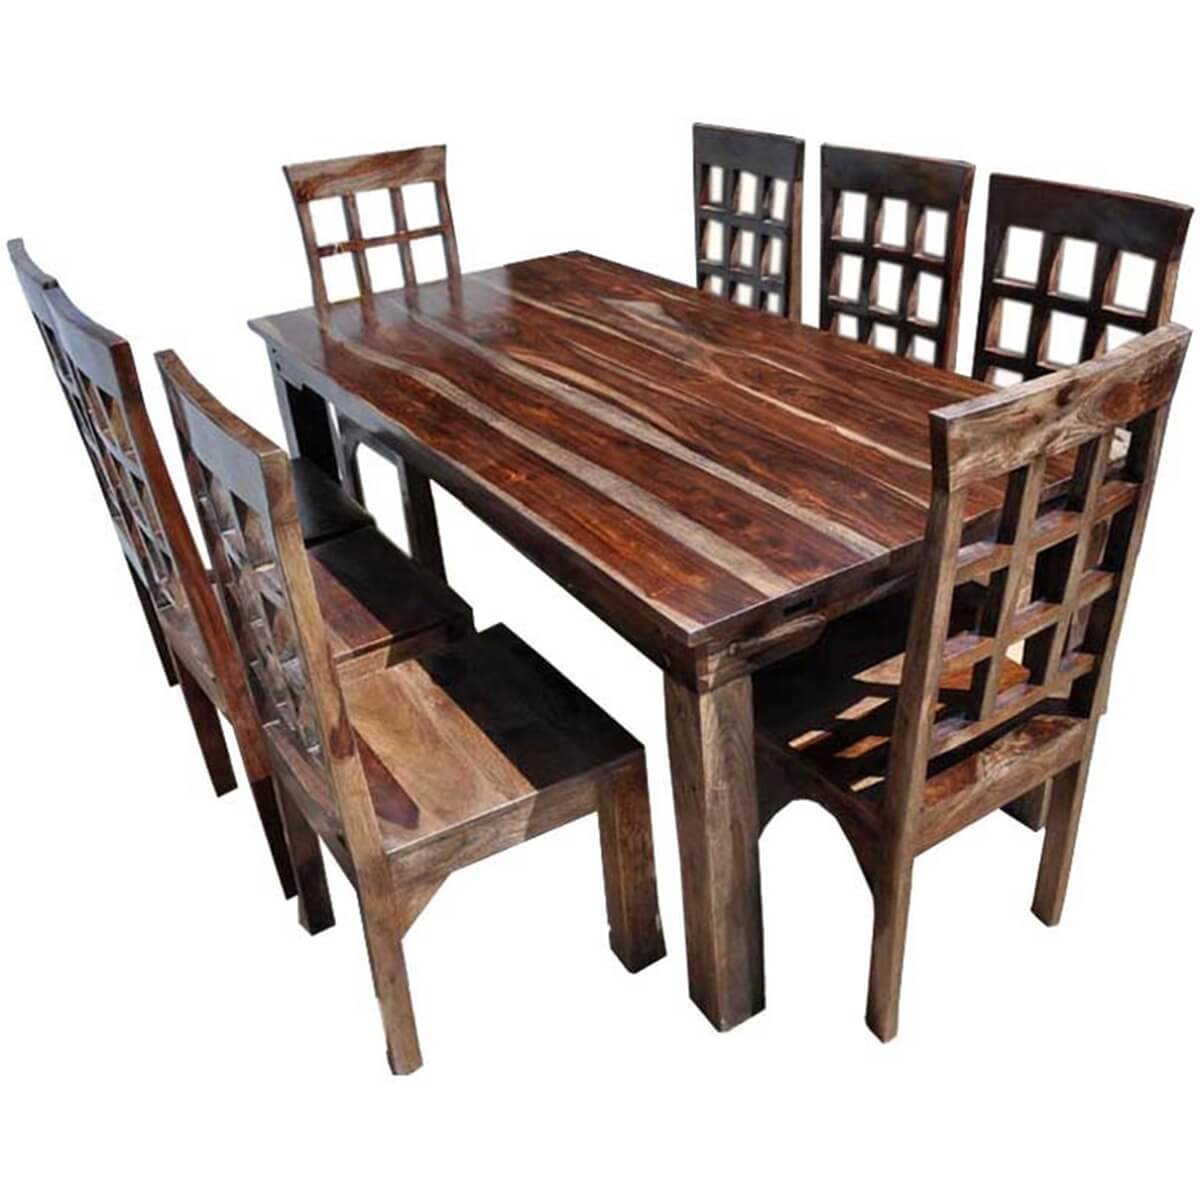 Portland rustic furniture dining room table chair set w for Dining room table and chair sets